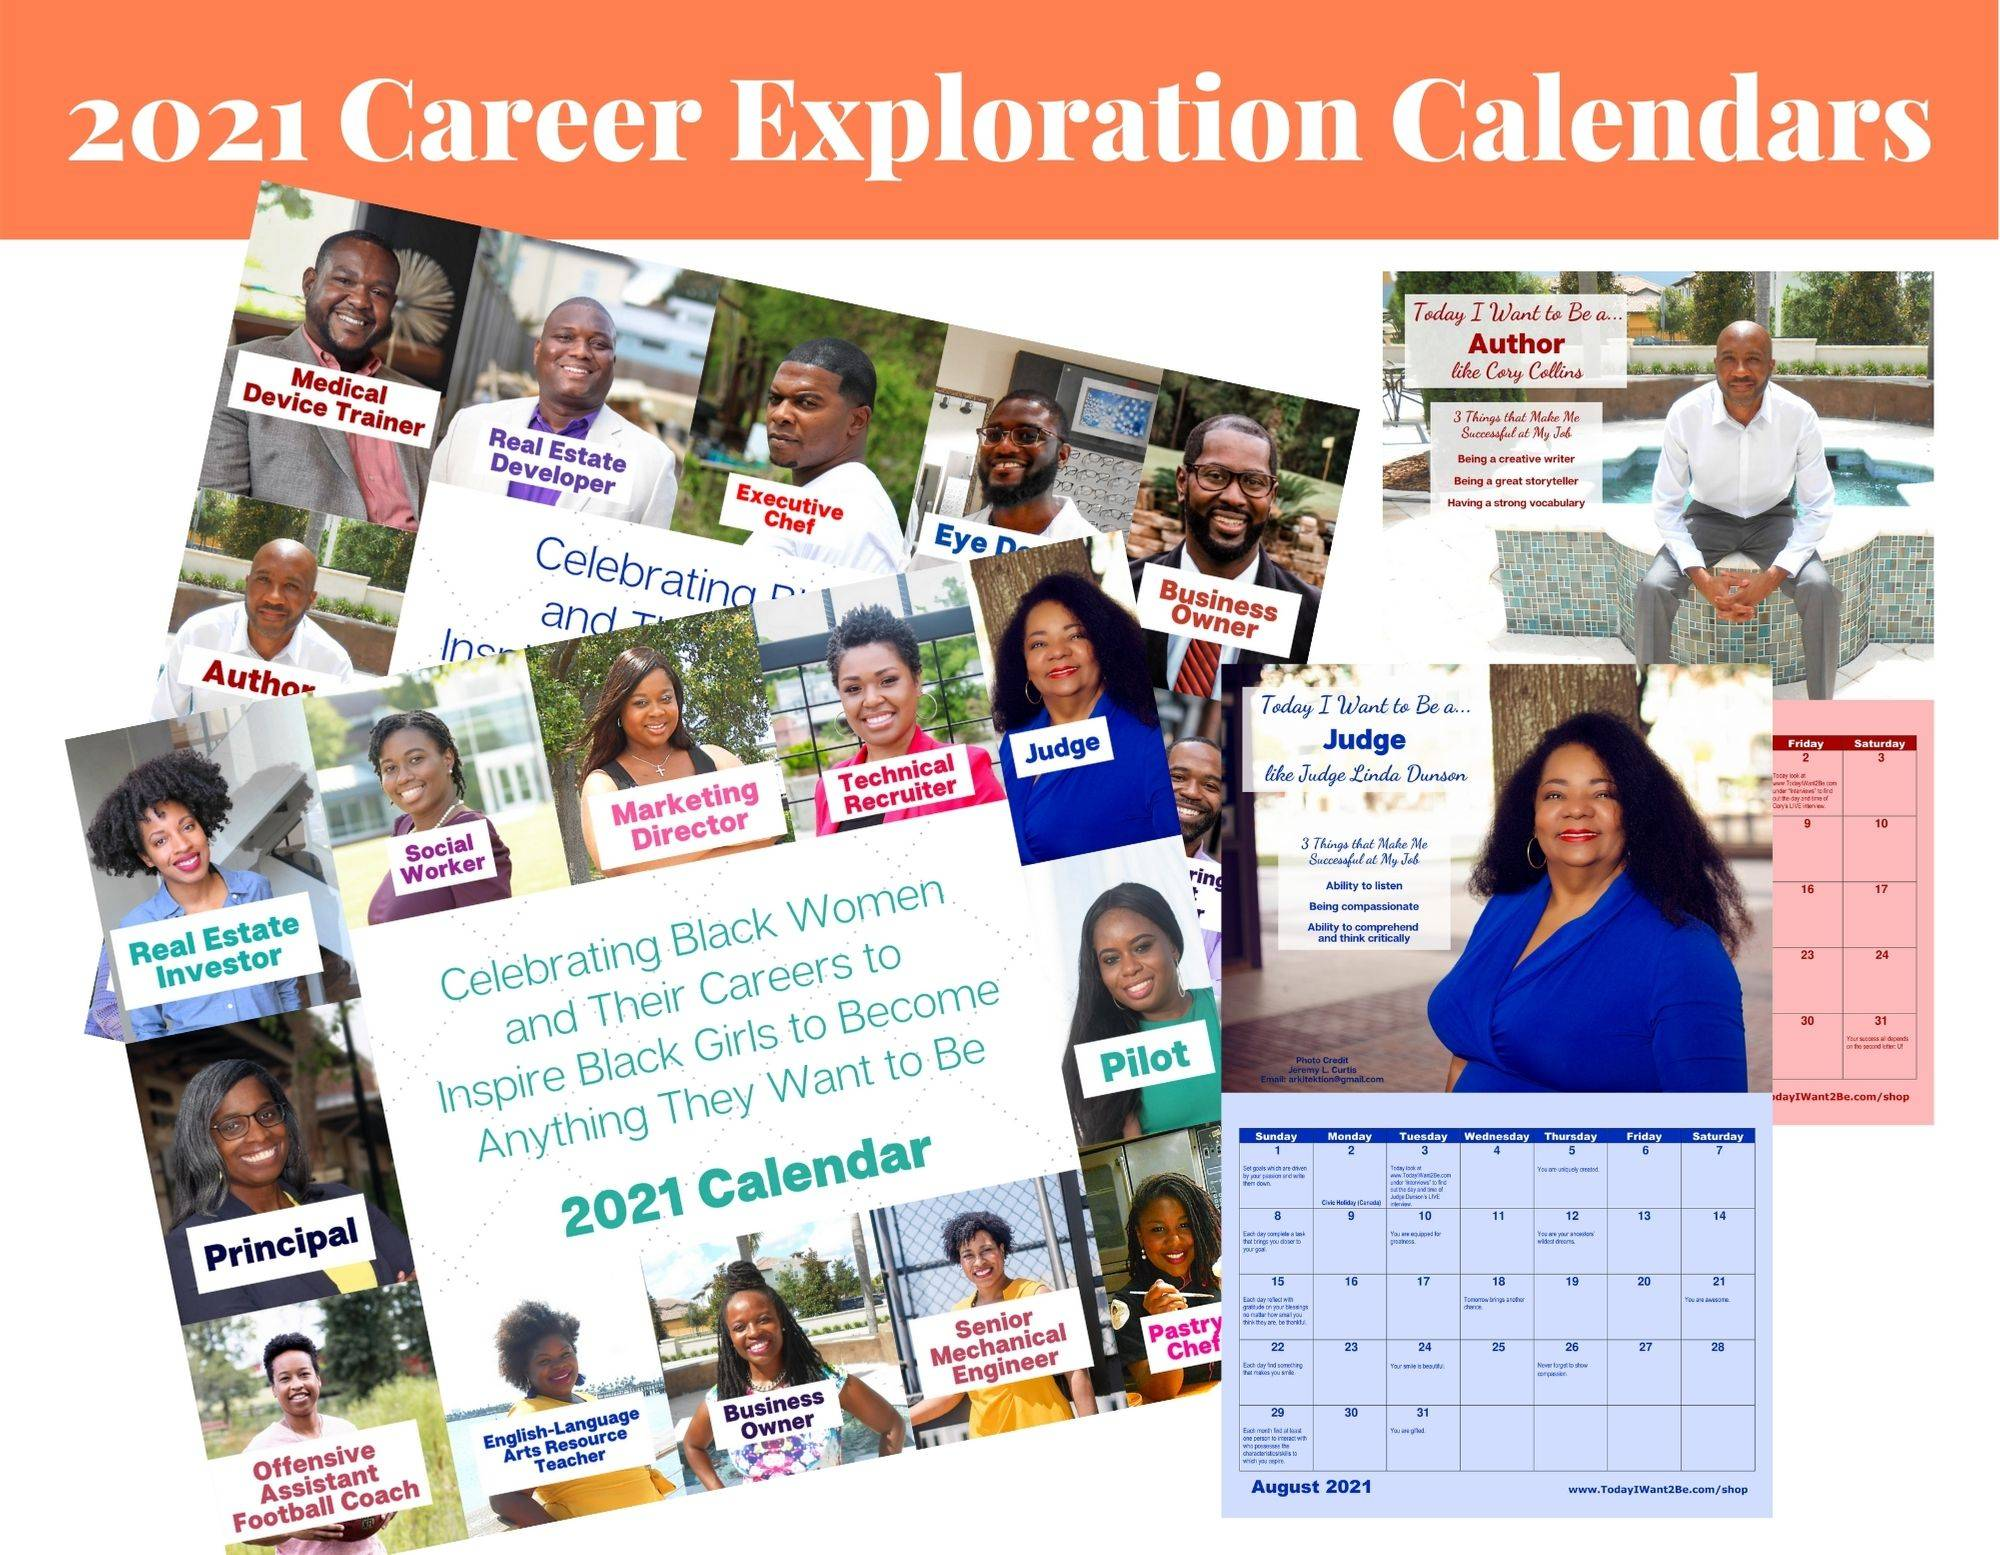 12 month 2021 career exploration resource wall calendar of black african American women and men with their job titles